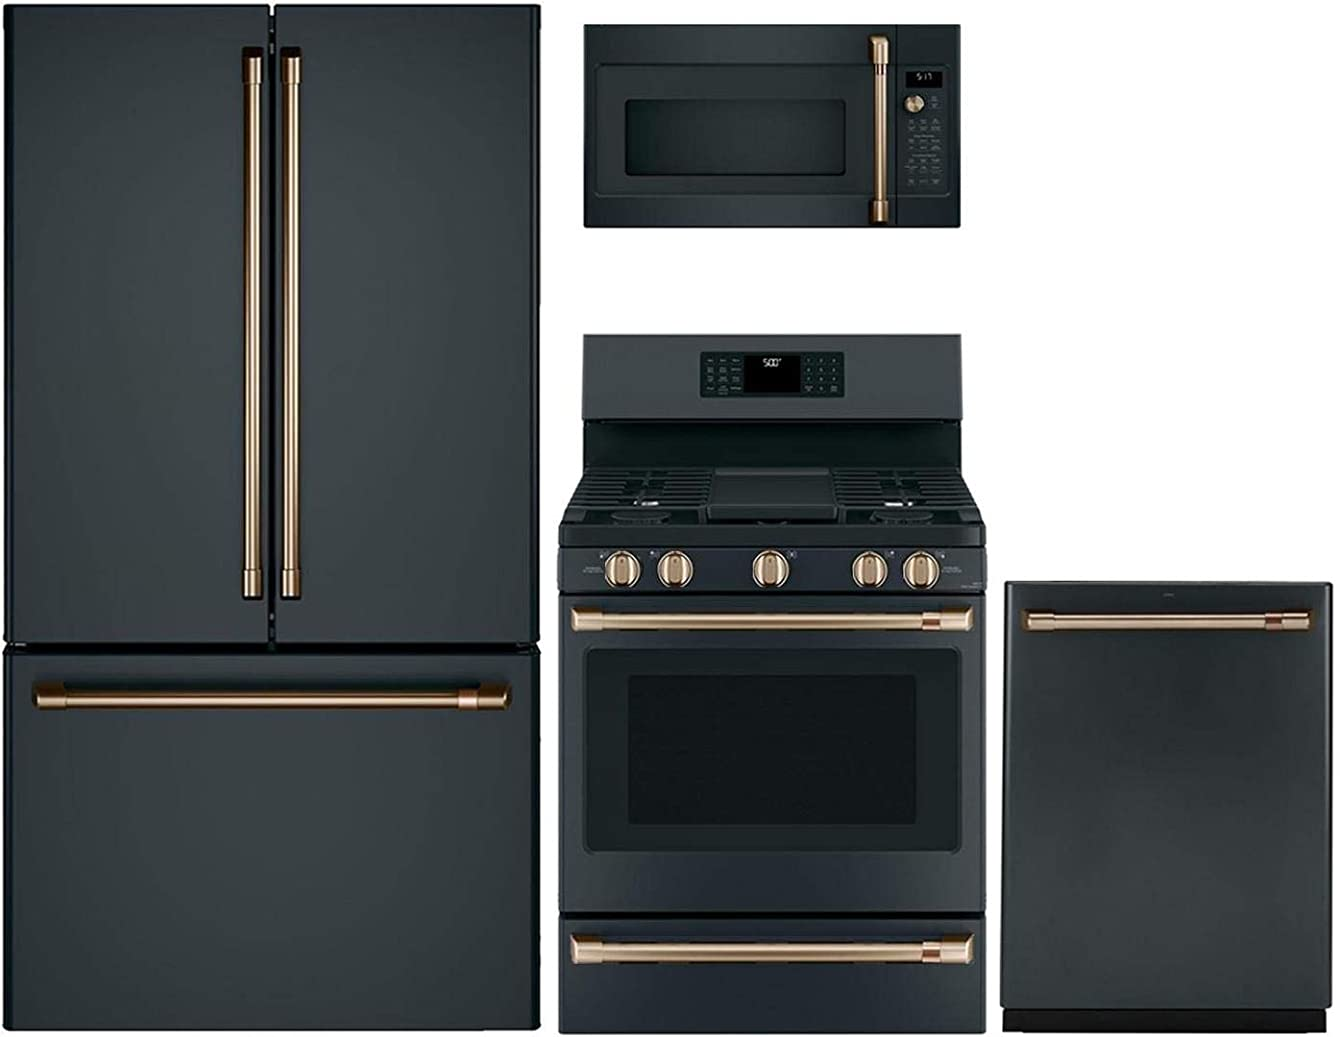 GE Cafe 4 Piece Kitchen Package CWE23SP3MD1 36